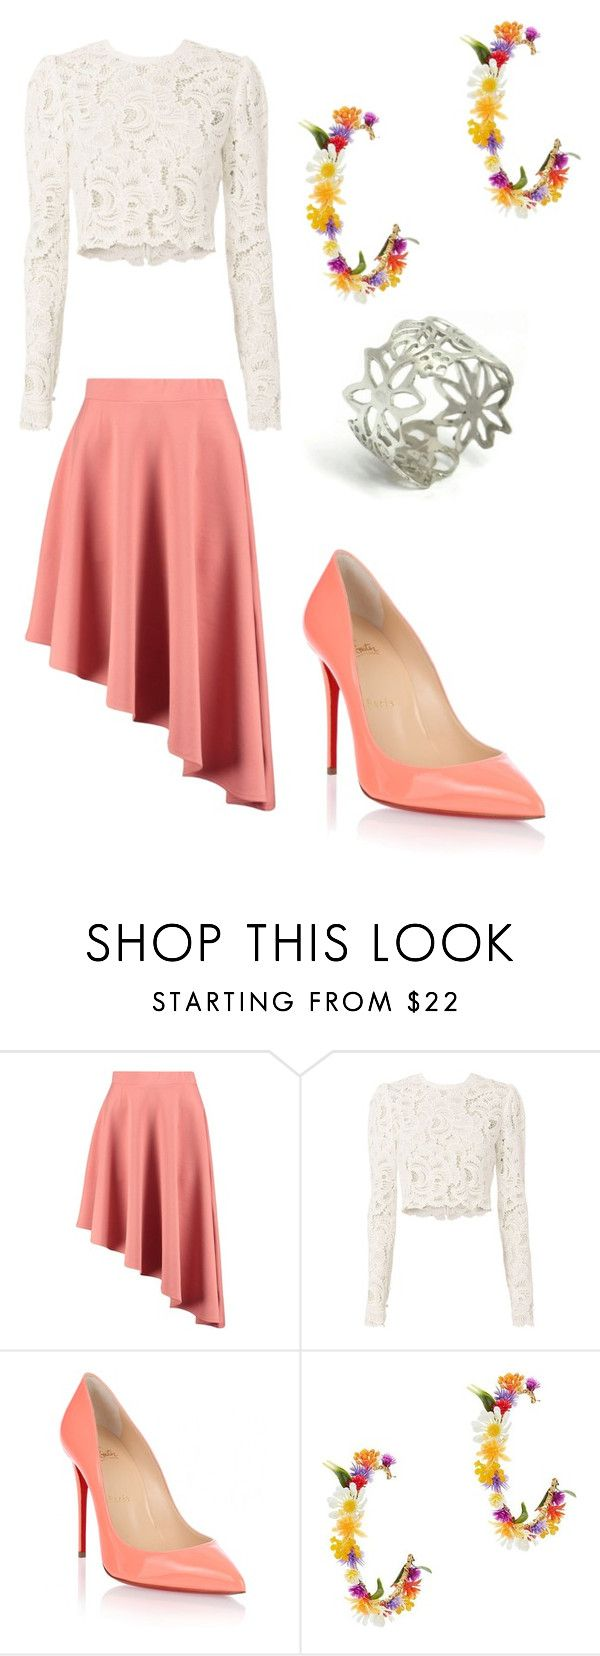 """""""Mambo No. 5, Lou Bega"""" by p0laroid ❤ liked on Polyvore featuring Boohoo, A.L.C., Christian Louboutin and Mercedes Salazar"""